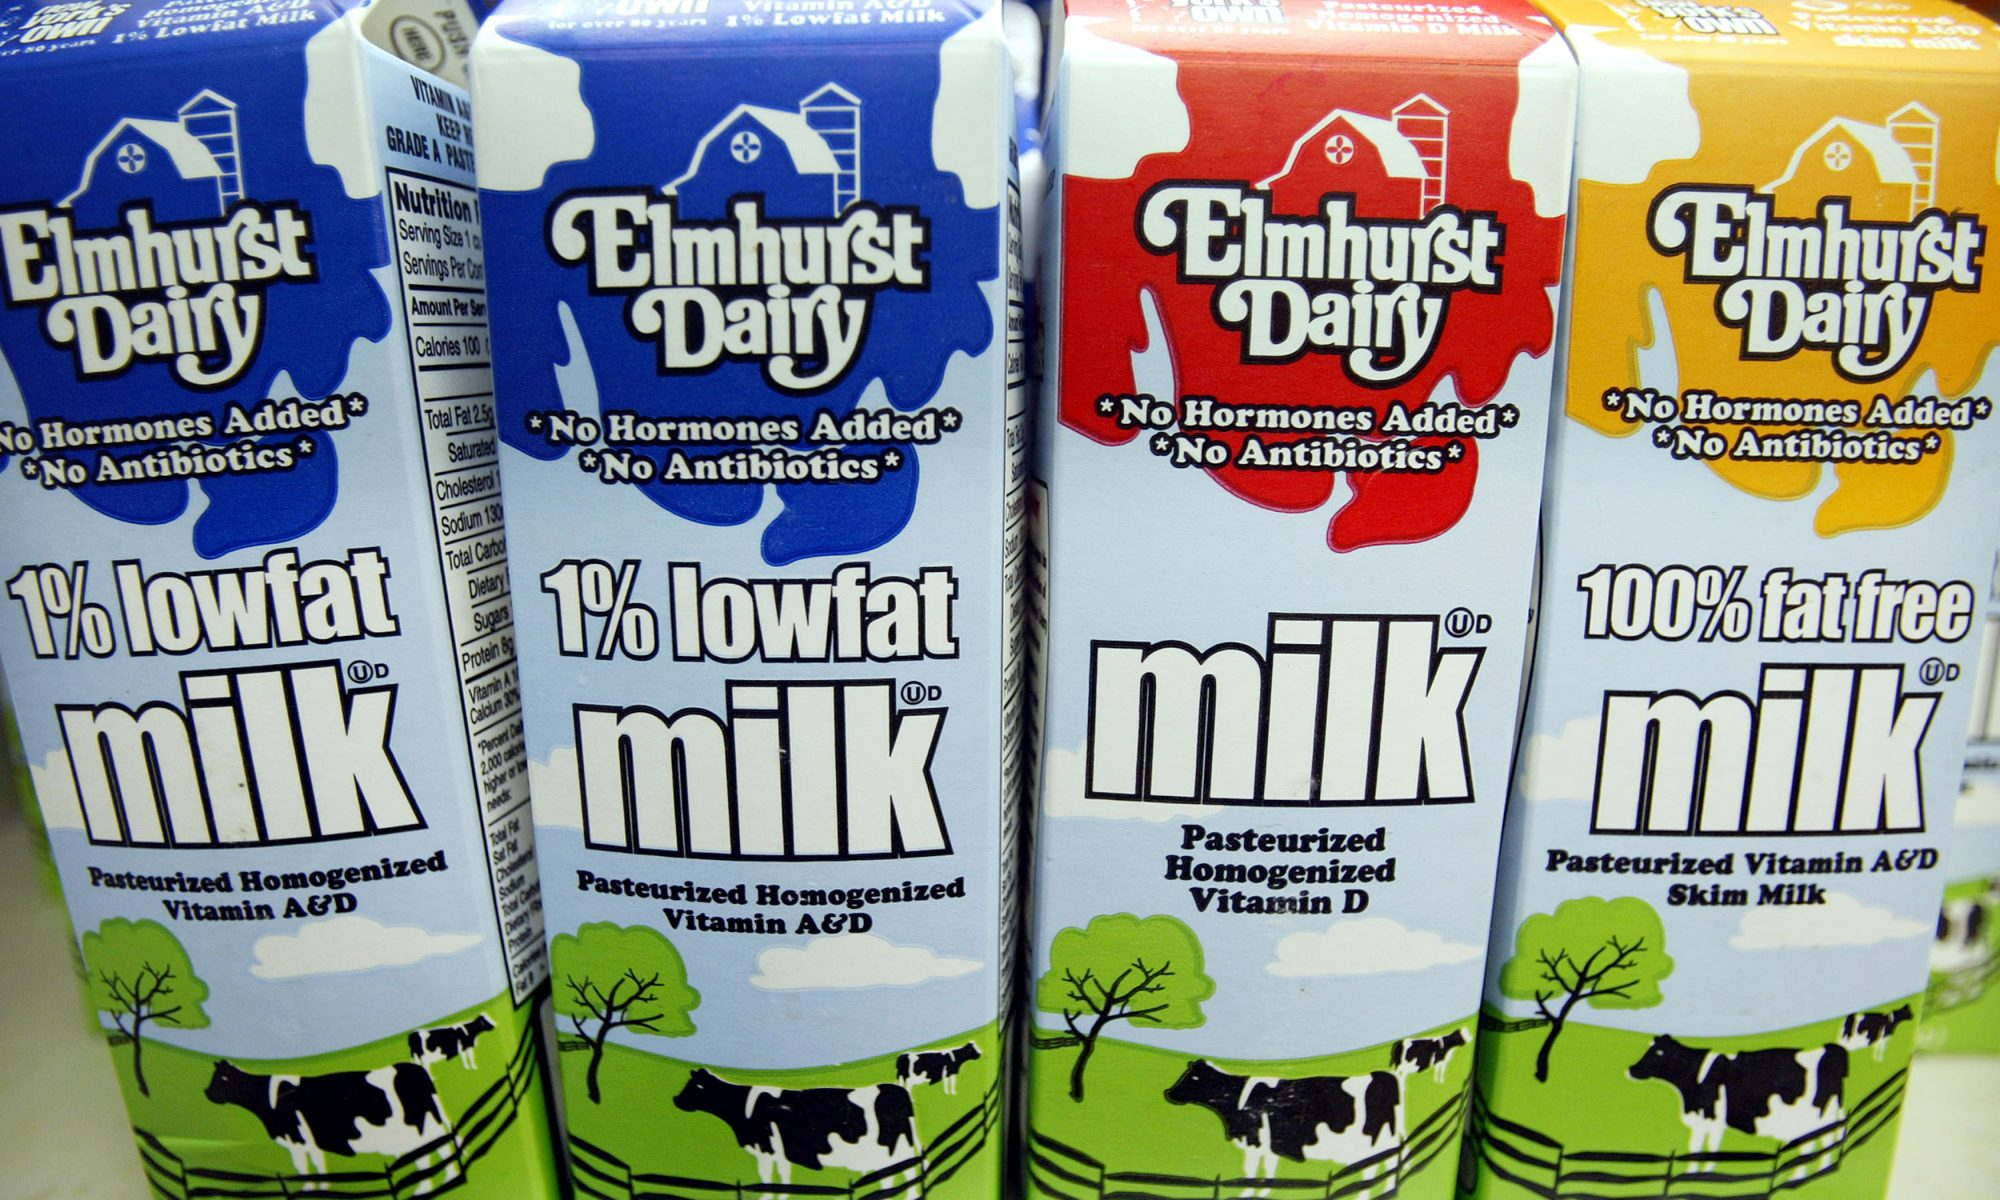 EC: Elmhurst Dairy Closing Will Mean the End of Milk Production in NYC